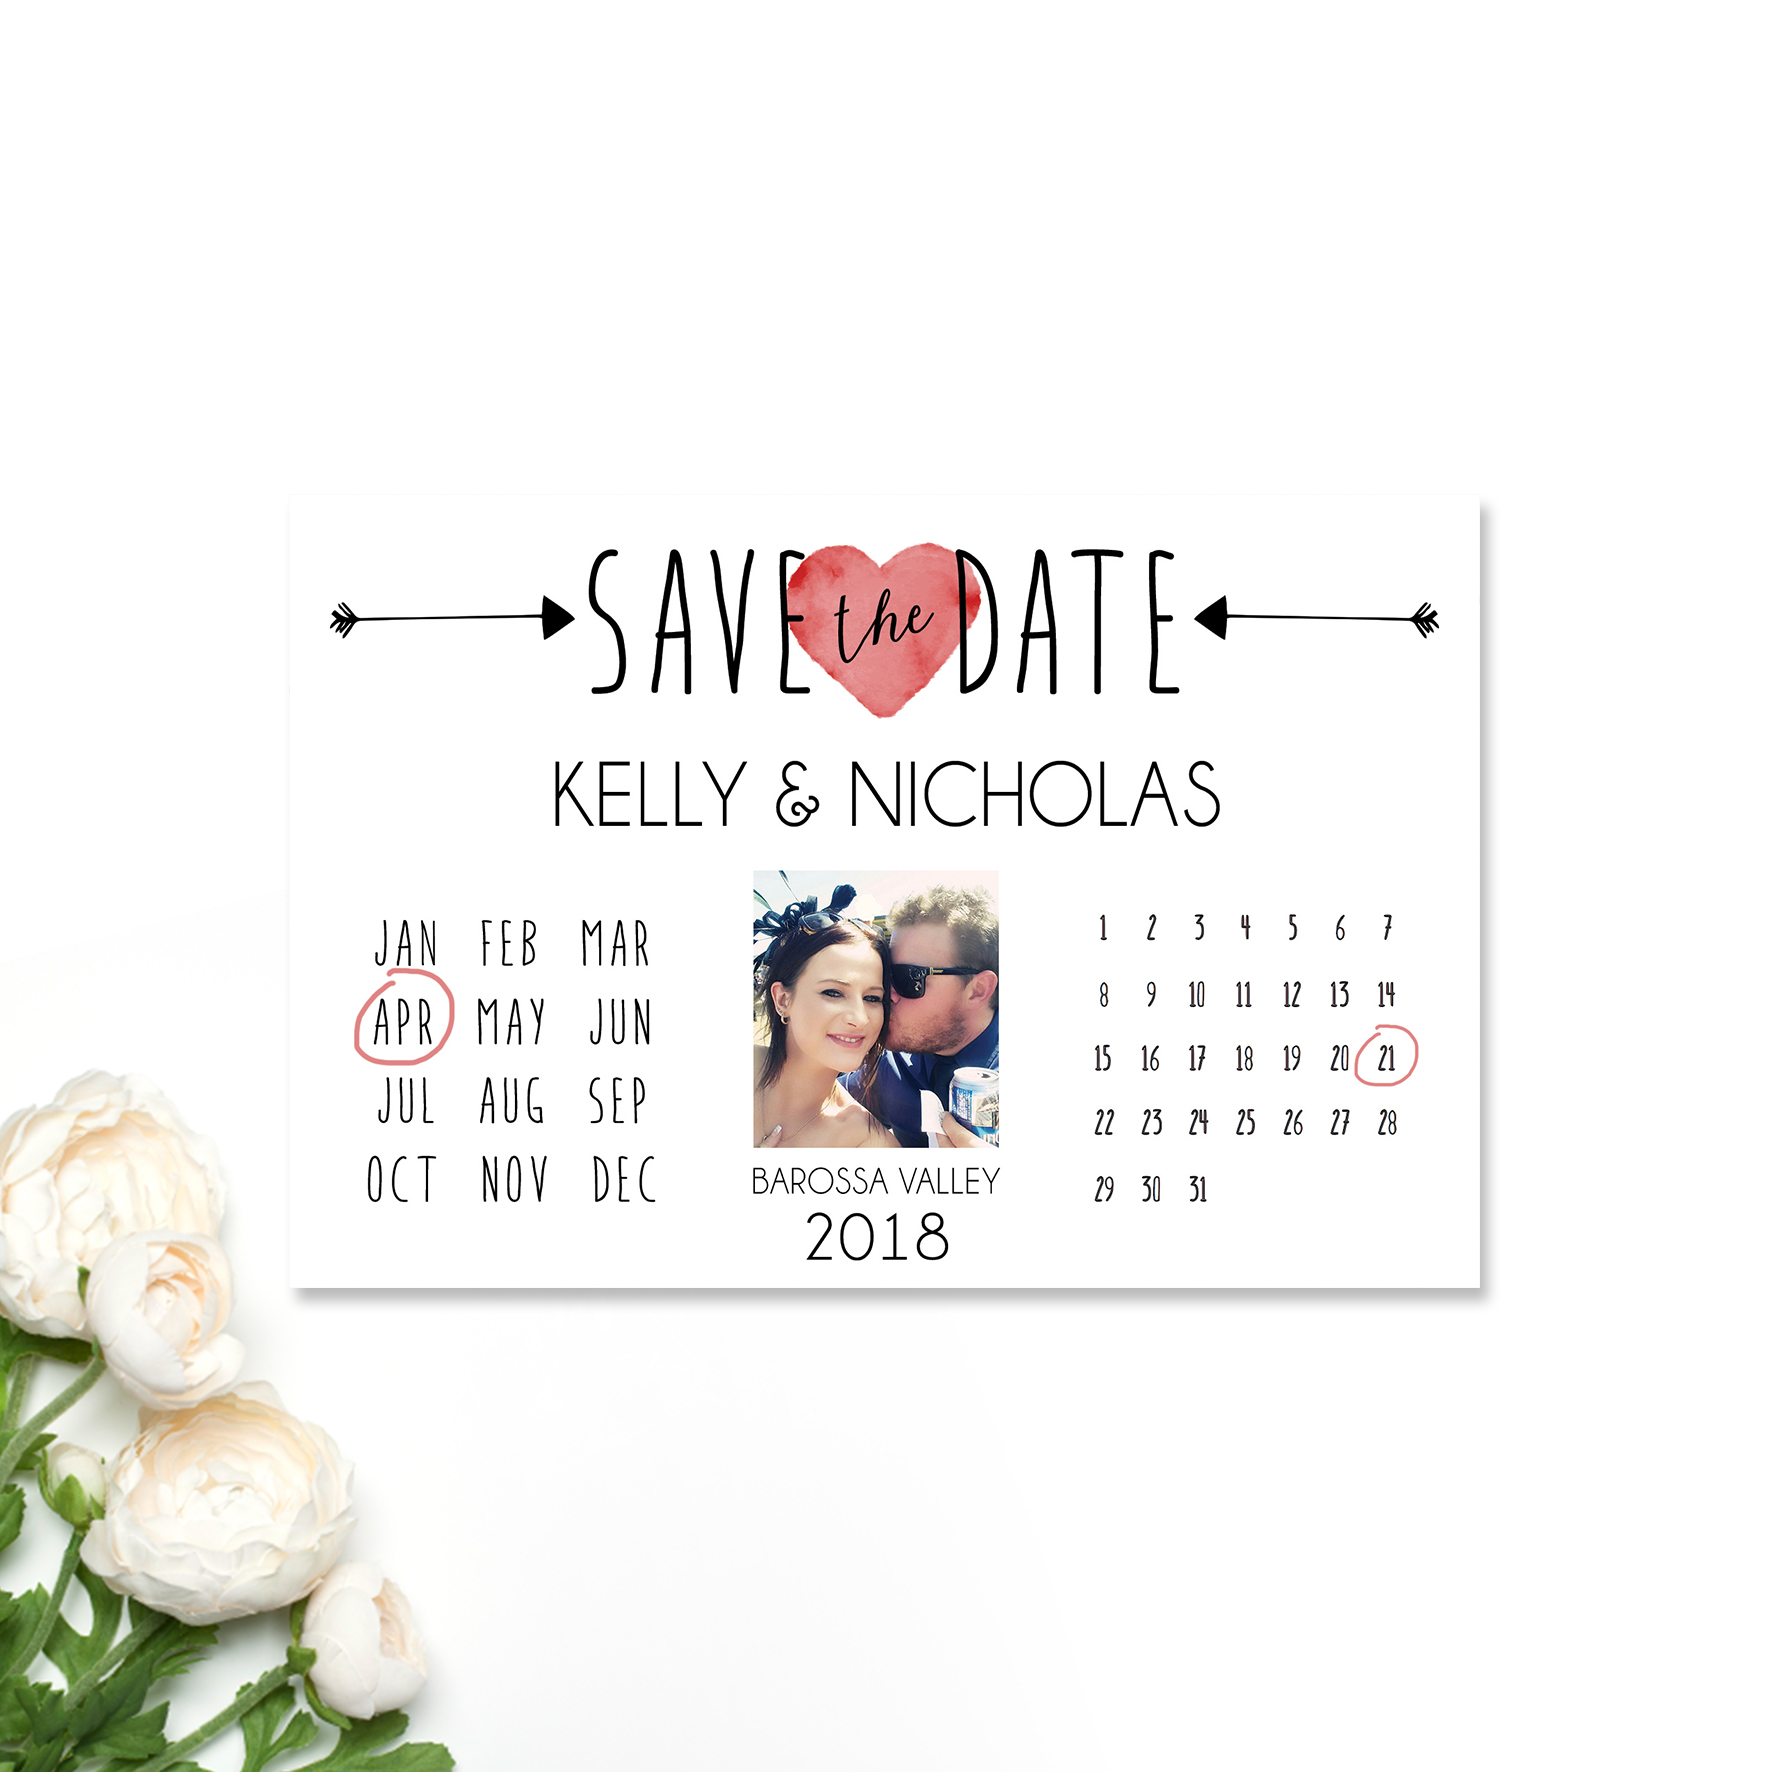 Kelly + Nicholas Save the Date Card